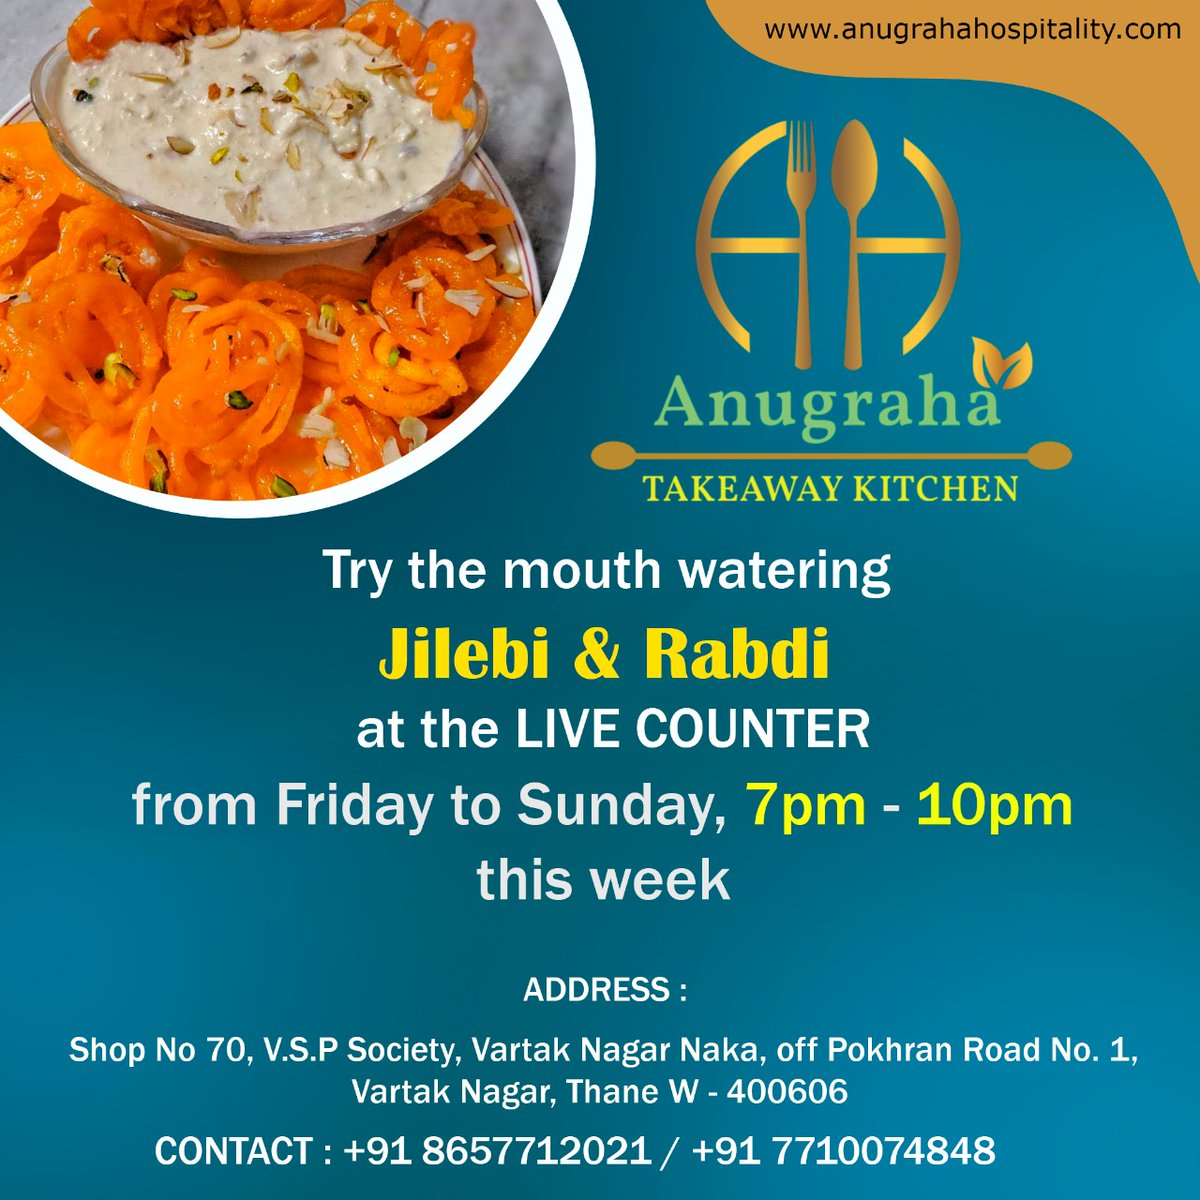 Enjoy the mouth watering garam garm crisp JILEBI & sweet delicious RABDI at our LIVE COUNTER from Friday to Sunday, 7pm - 10pm  Hurry up !!!! Visit our Kitchen  #restaurant #food #foodie #cheese #jilebi #Rabdi #sweet #instafood #dinner  #delicious  #AnugrahaTakeawayKitchen https://t.co/a6oifoF0LQ